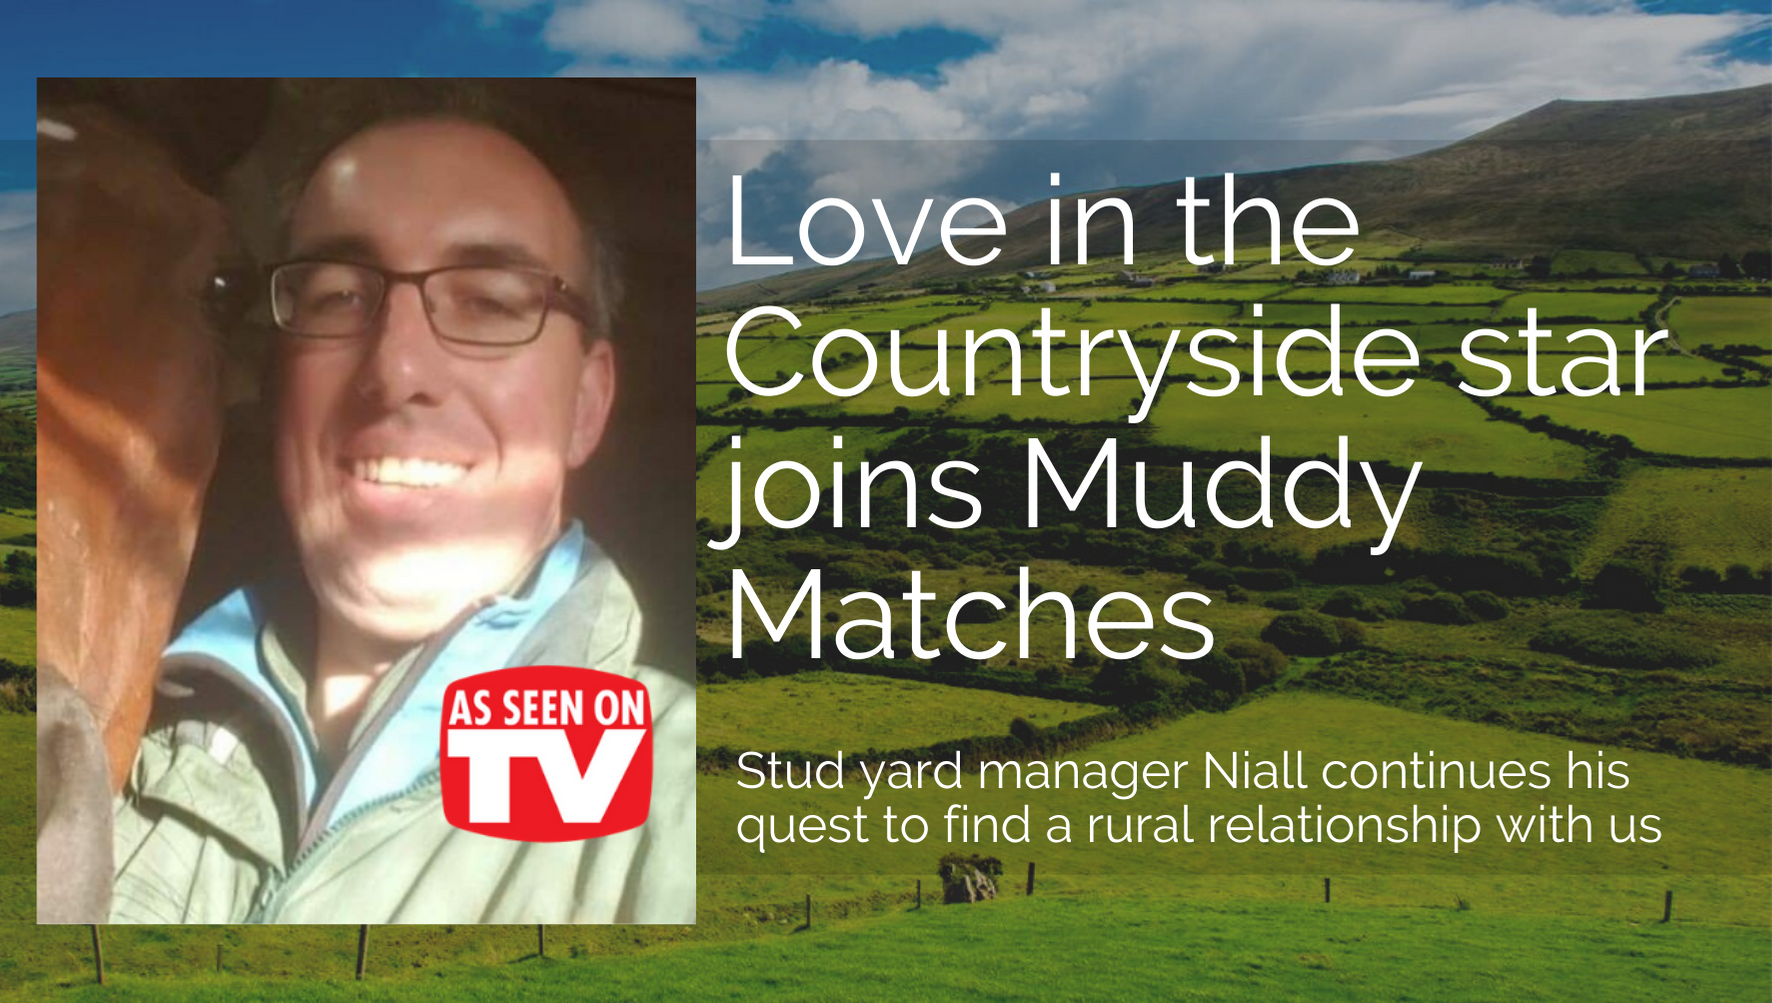 Love in the Countryside star joins Muddy Matches